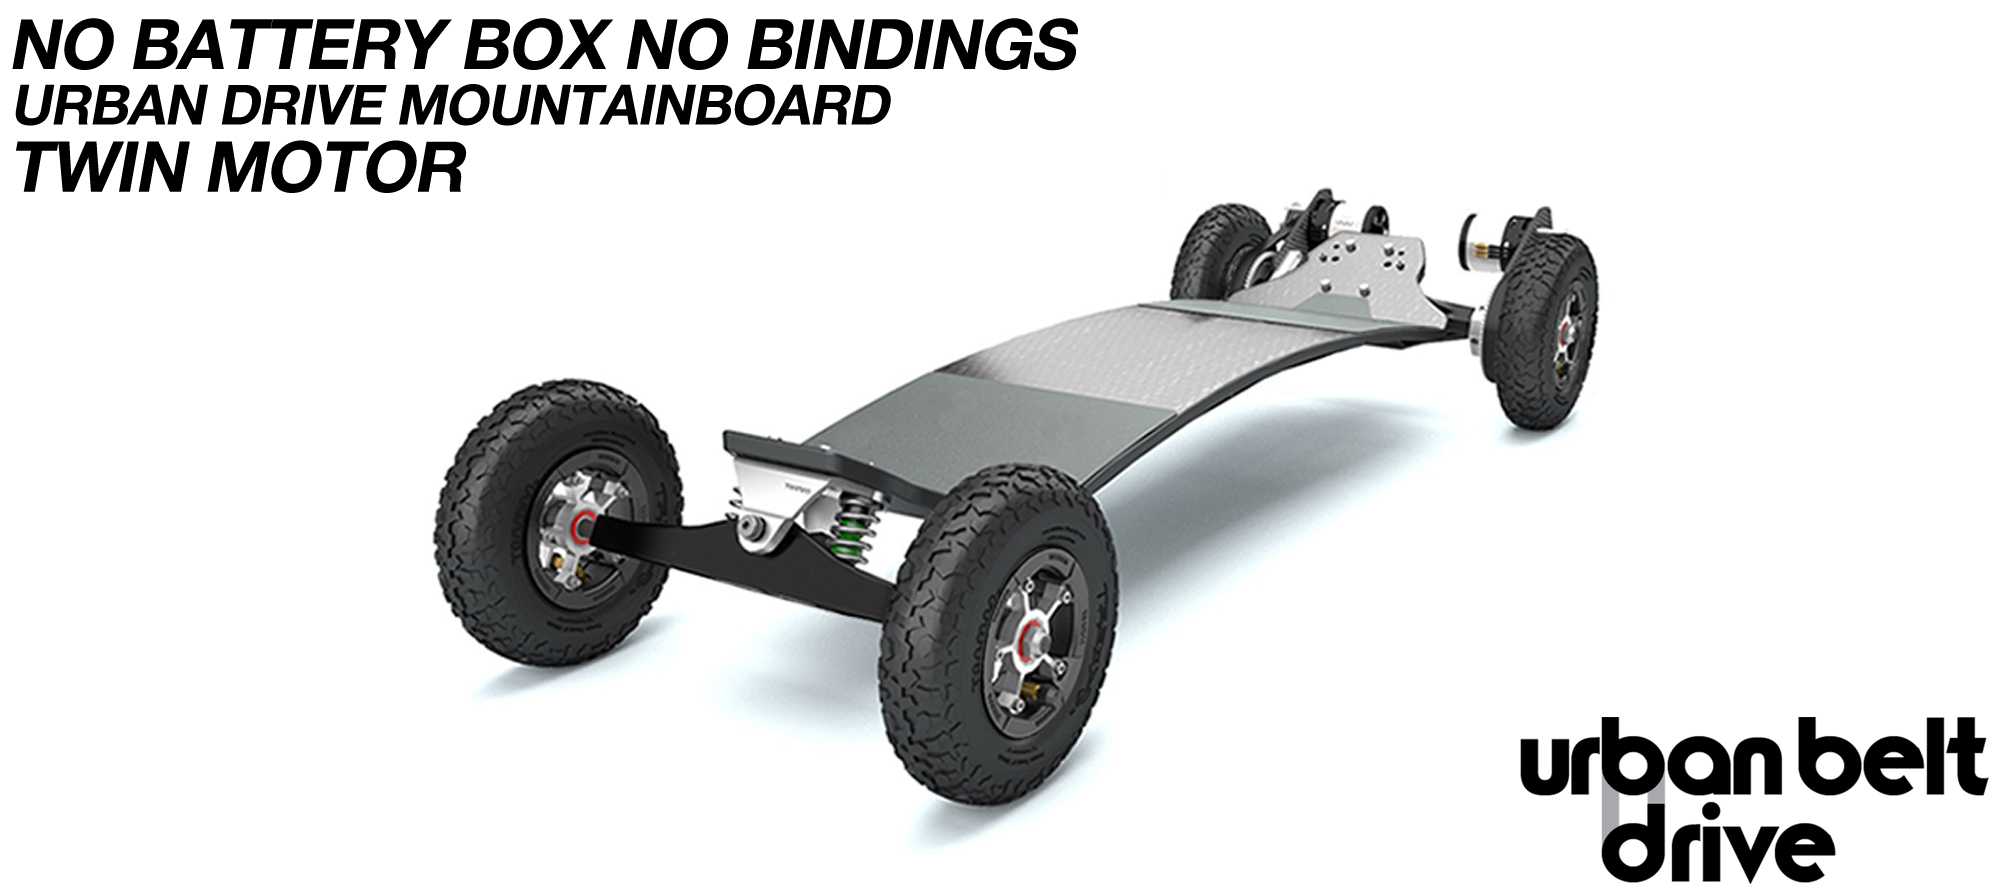 URBAN Electric Mountainboard - Urban Motor Mounts on custom TRAMPA deck ATB Trucks custom 8 inch Wheels NO Battery Box TWIN VESC - NO BINDINGS